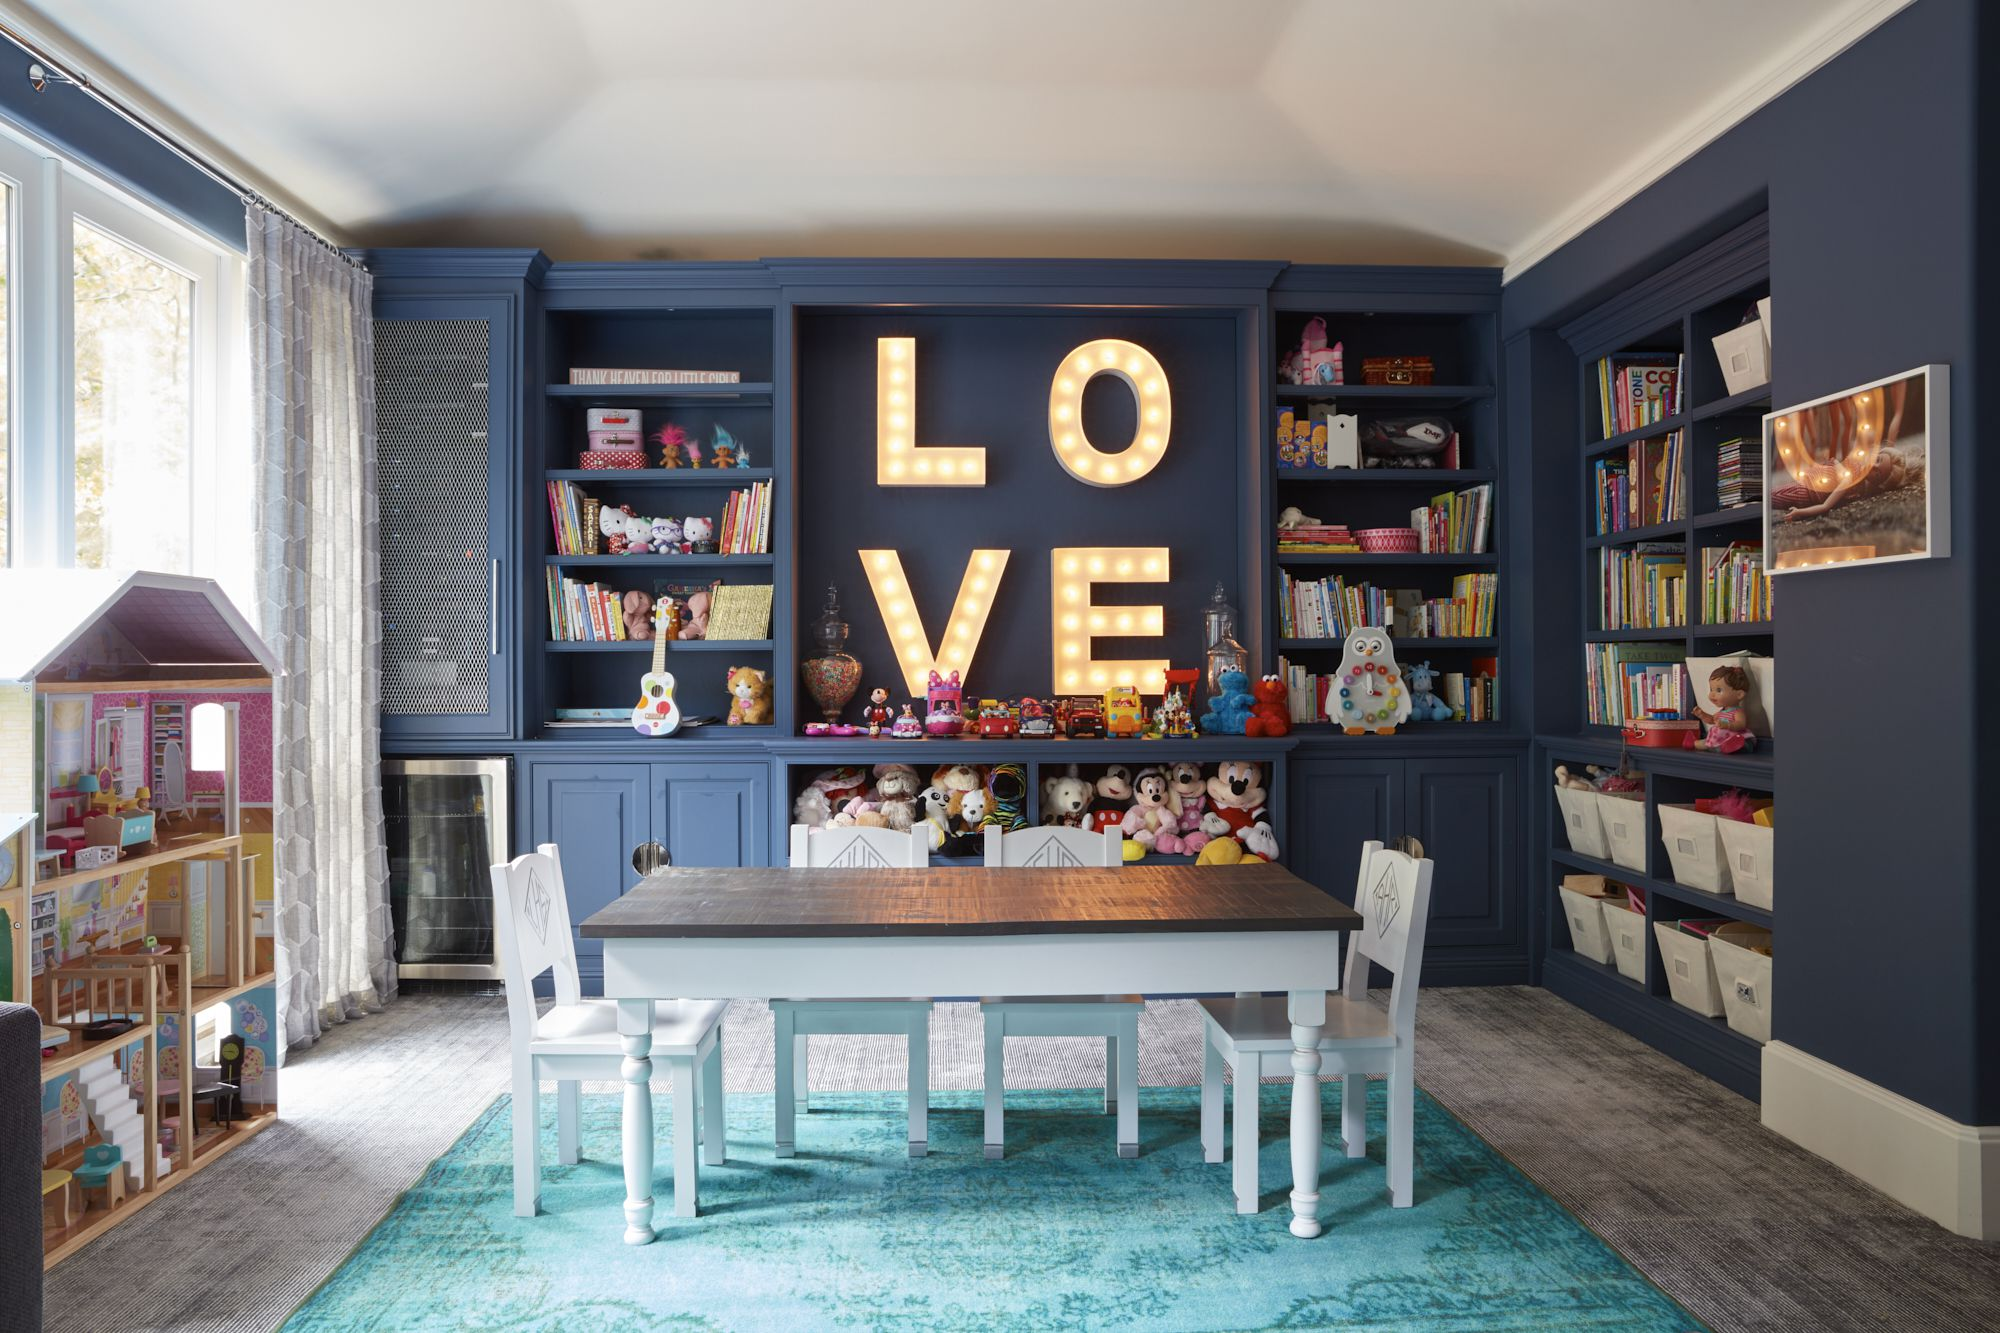 kid friendly living room decorating ideas small decor india best 19 kids playroom